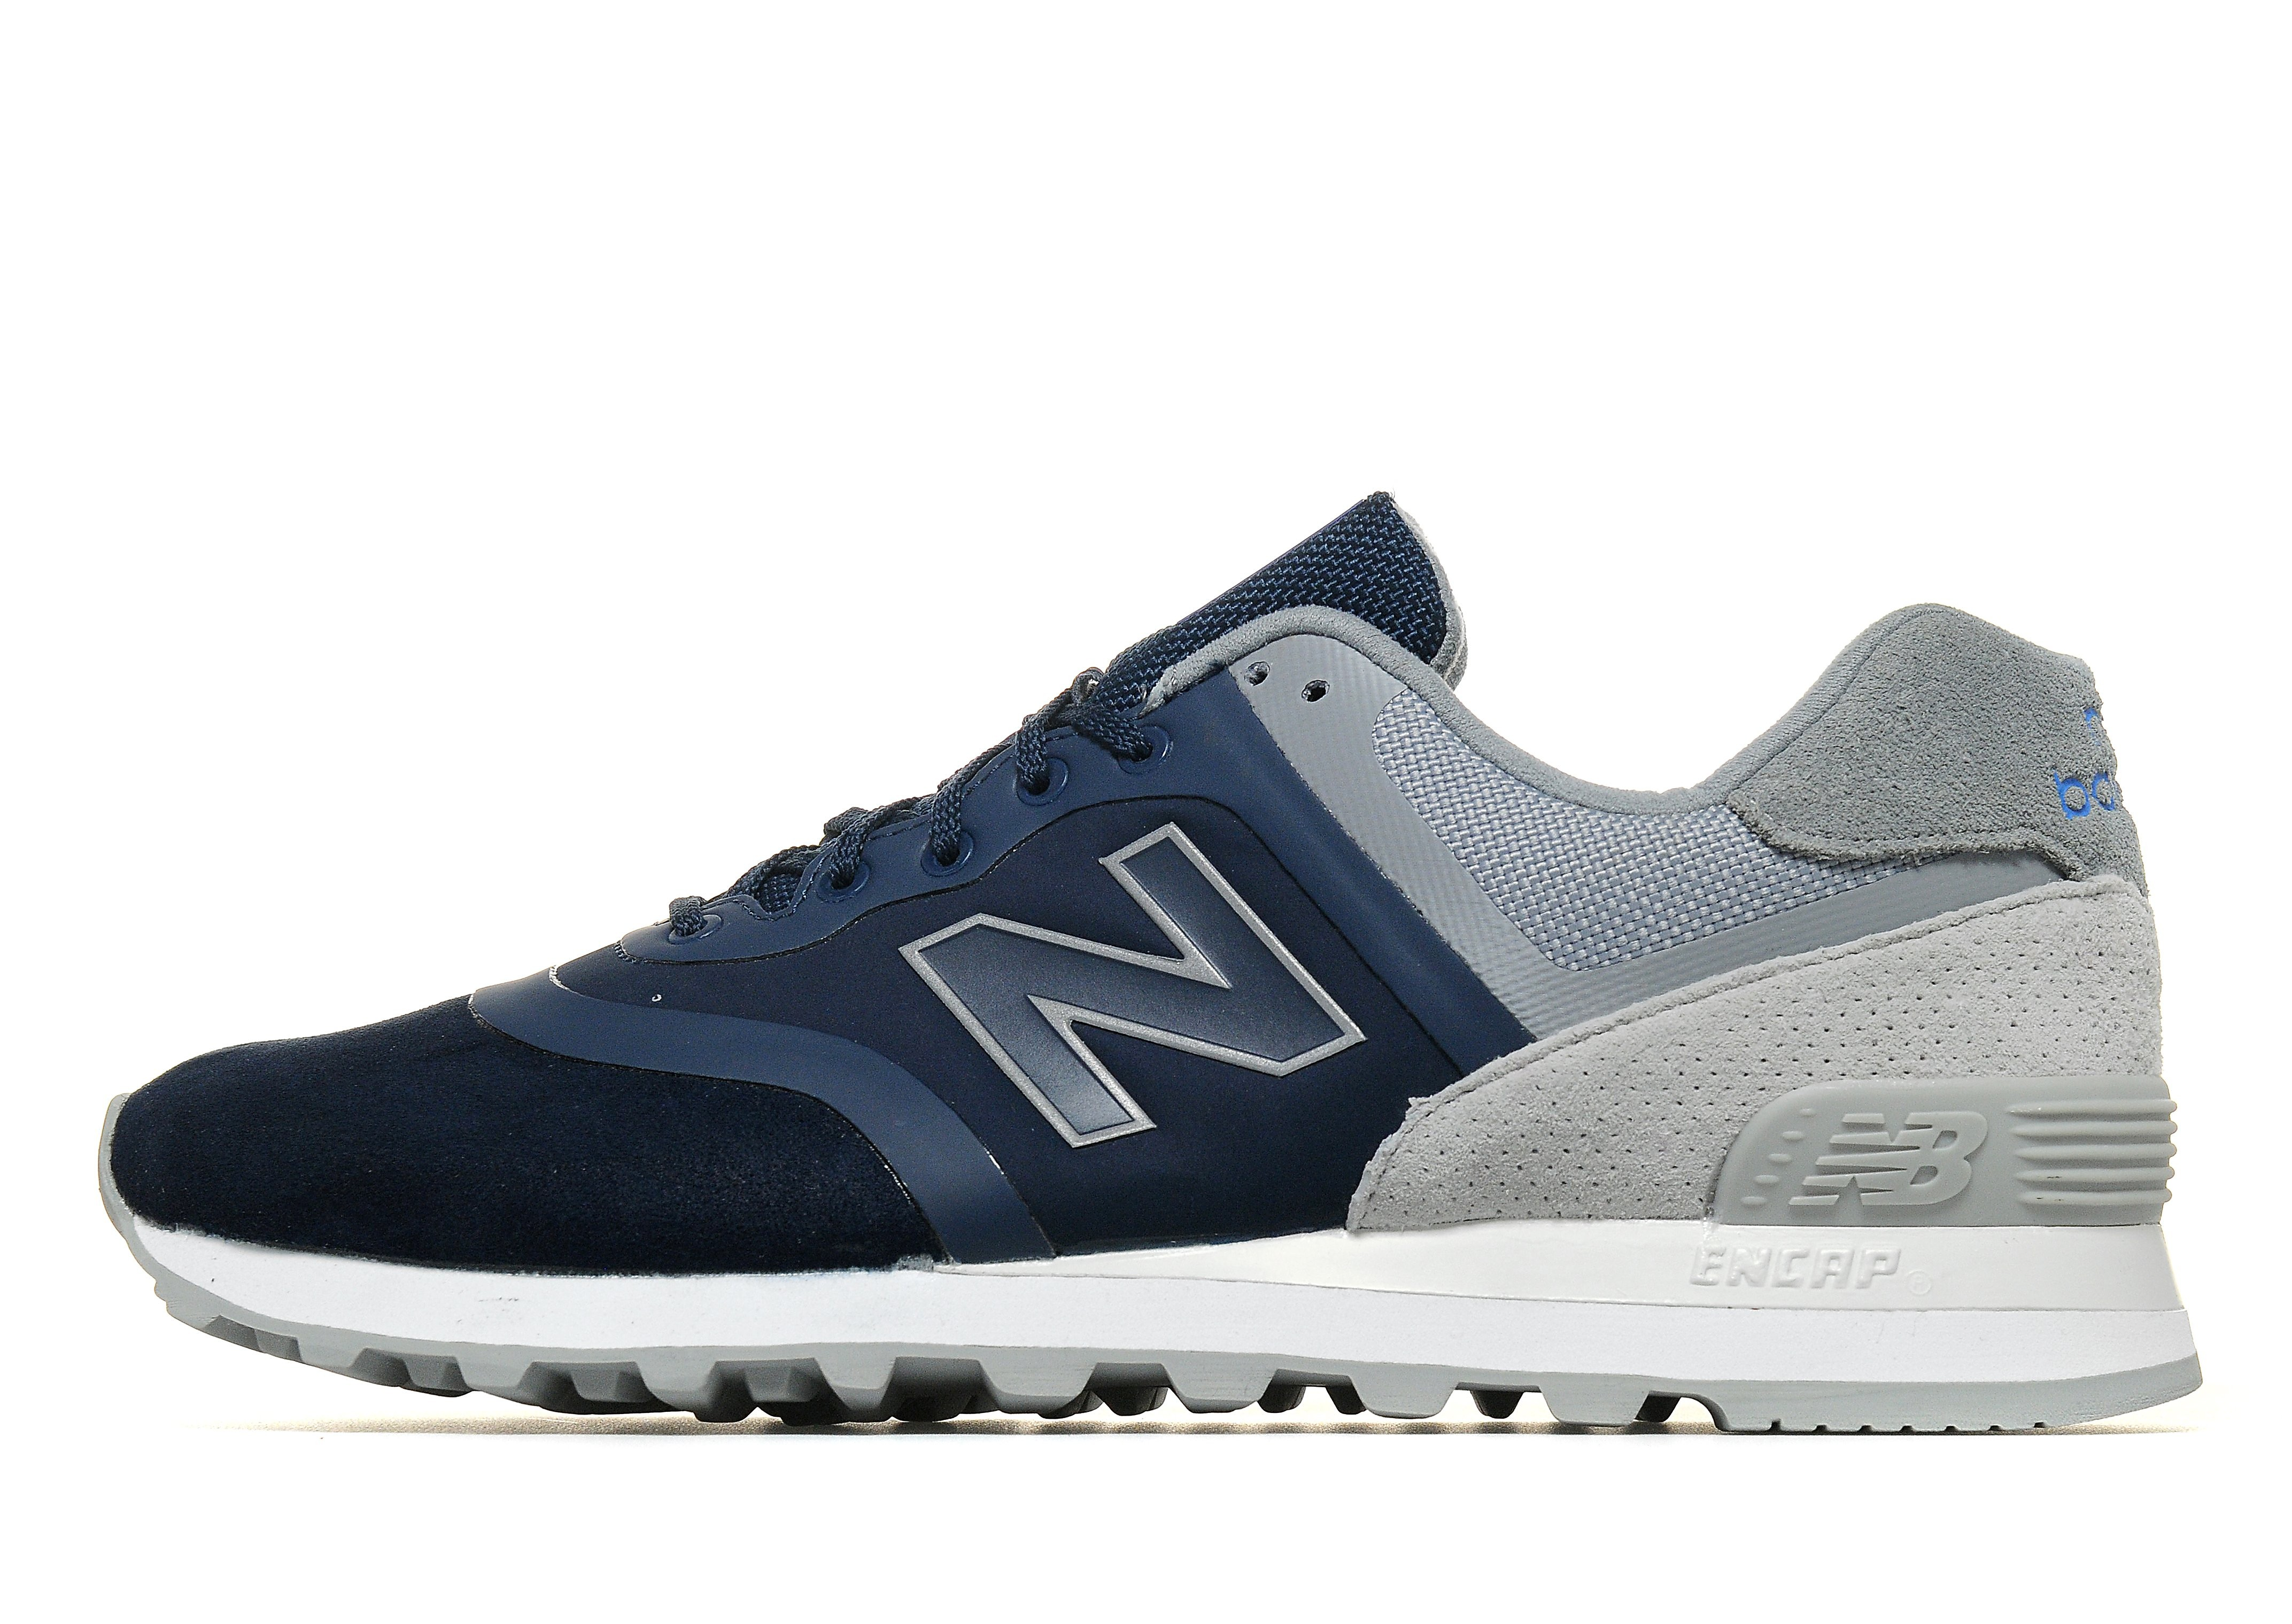 New Balance 574 Re-Engineered Suede